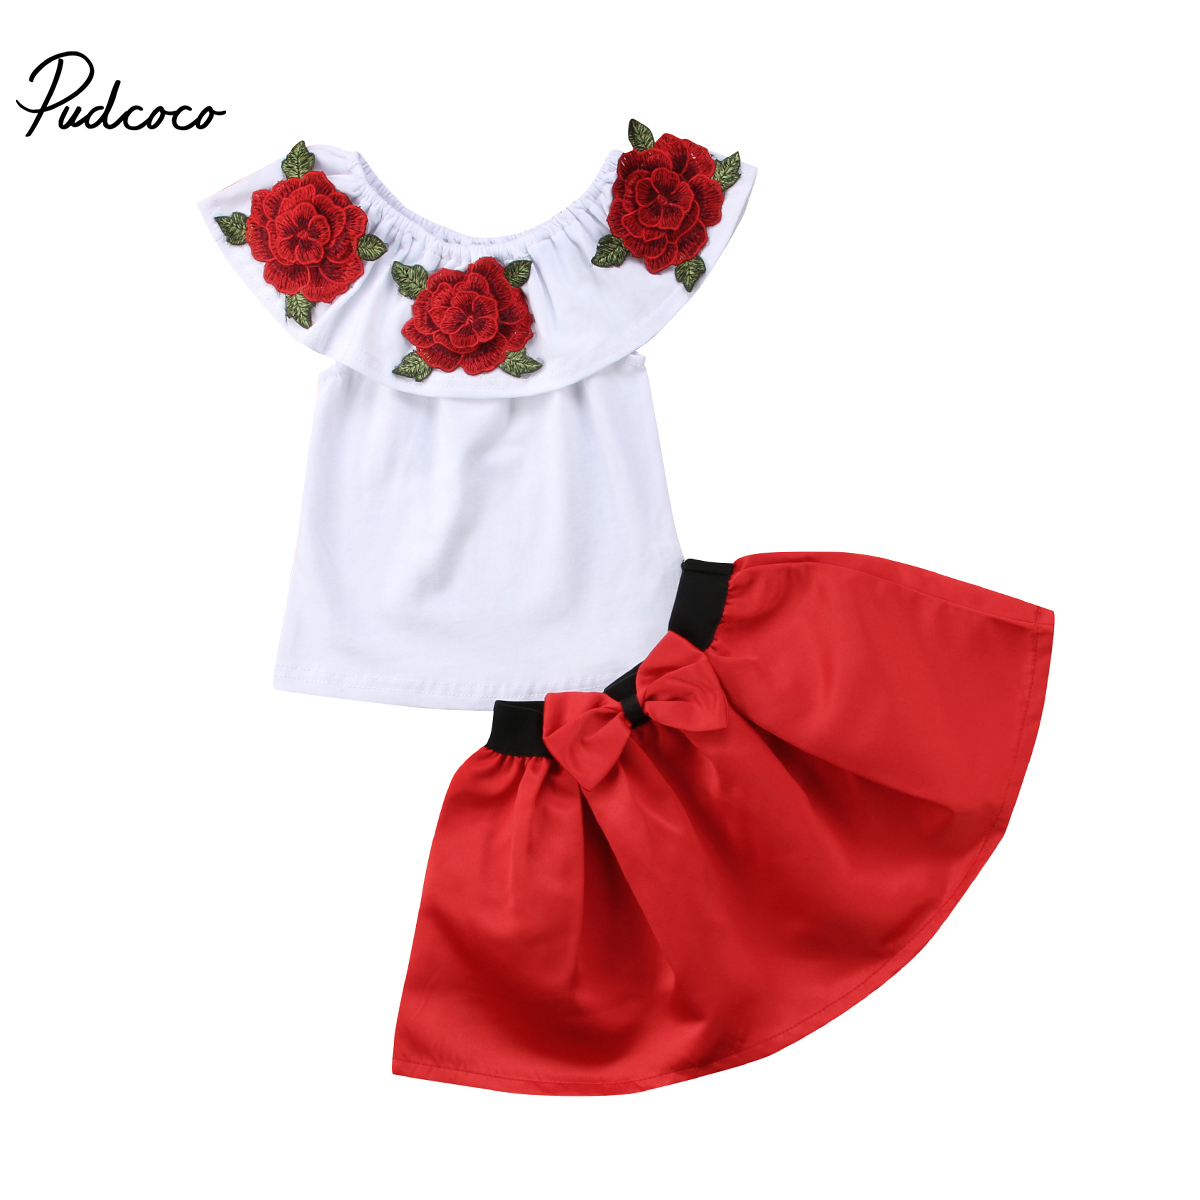 Summer Girls Clothes New Casual Children Clothing Sets Short Sleeve Flower Shirts Red Skirt Kids Girls Outfits  2 3 4 5 6 Years